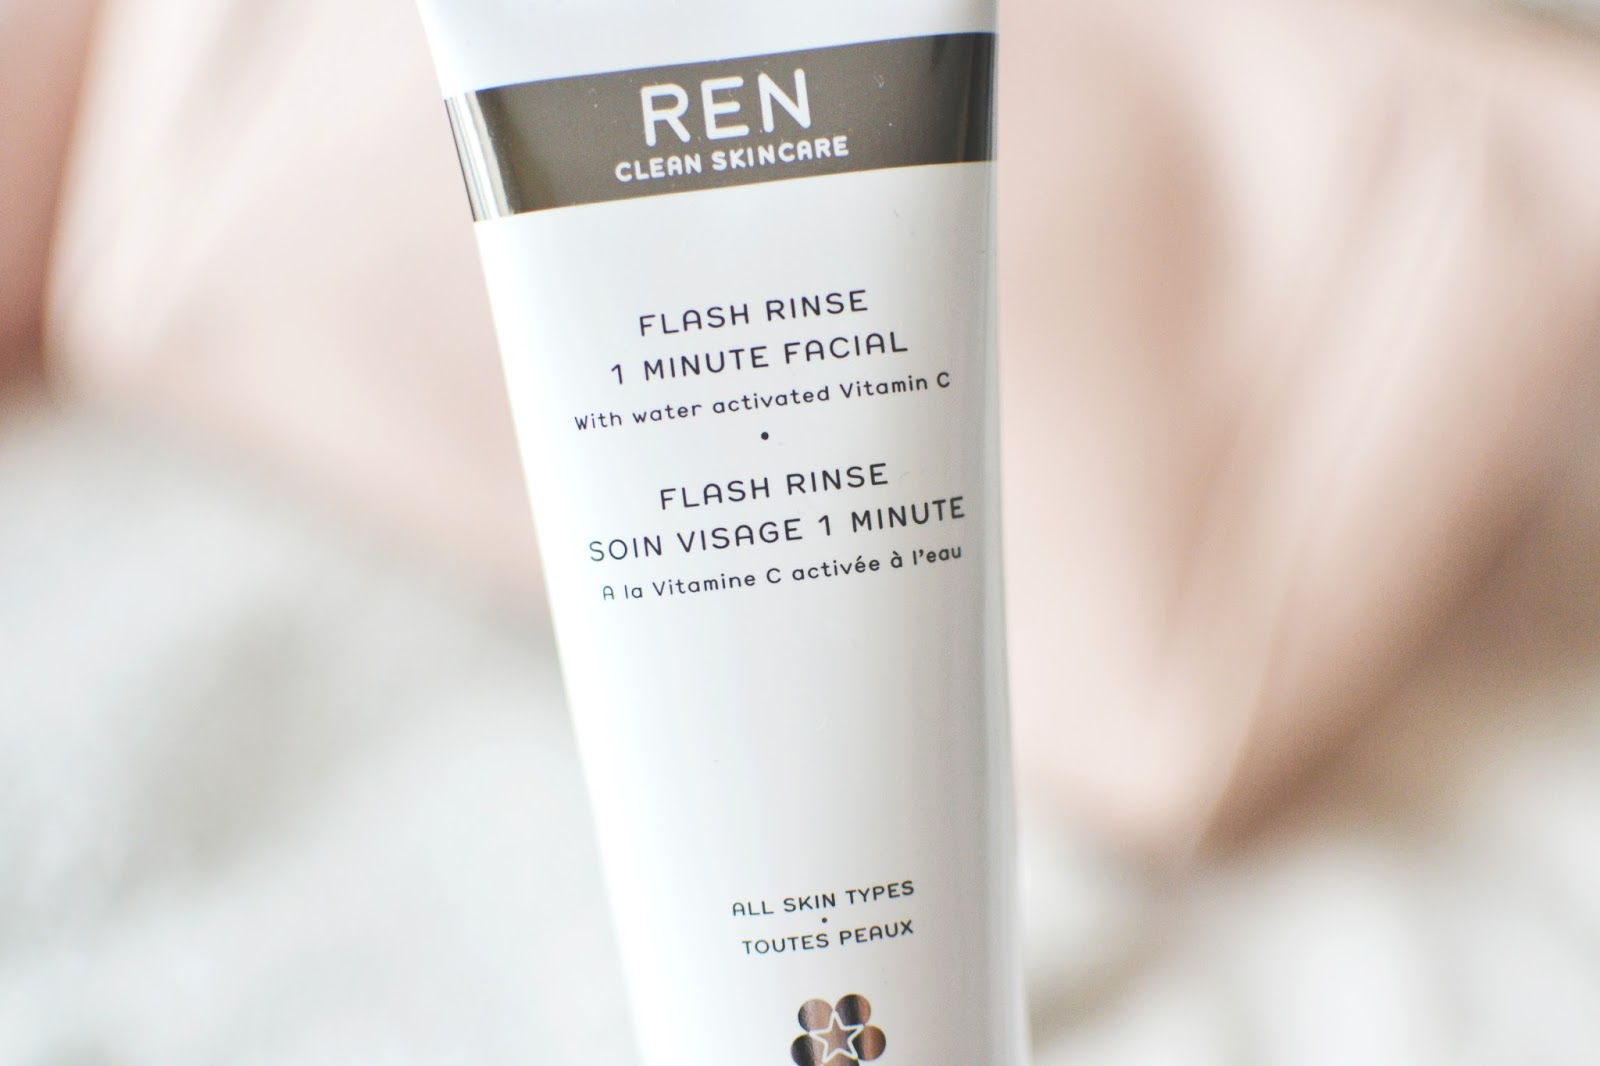 REN Flash Rinse 1 Minute Facial, REN Flash Rinse 1 Minute Facial review